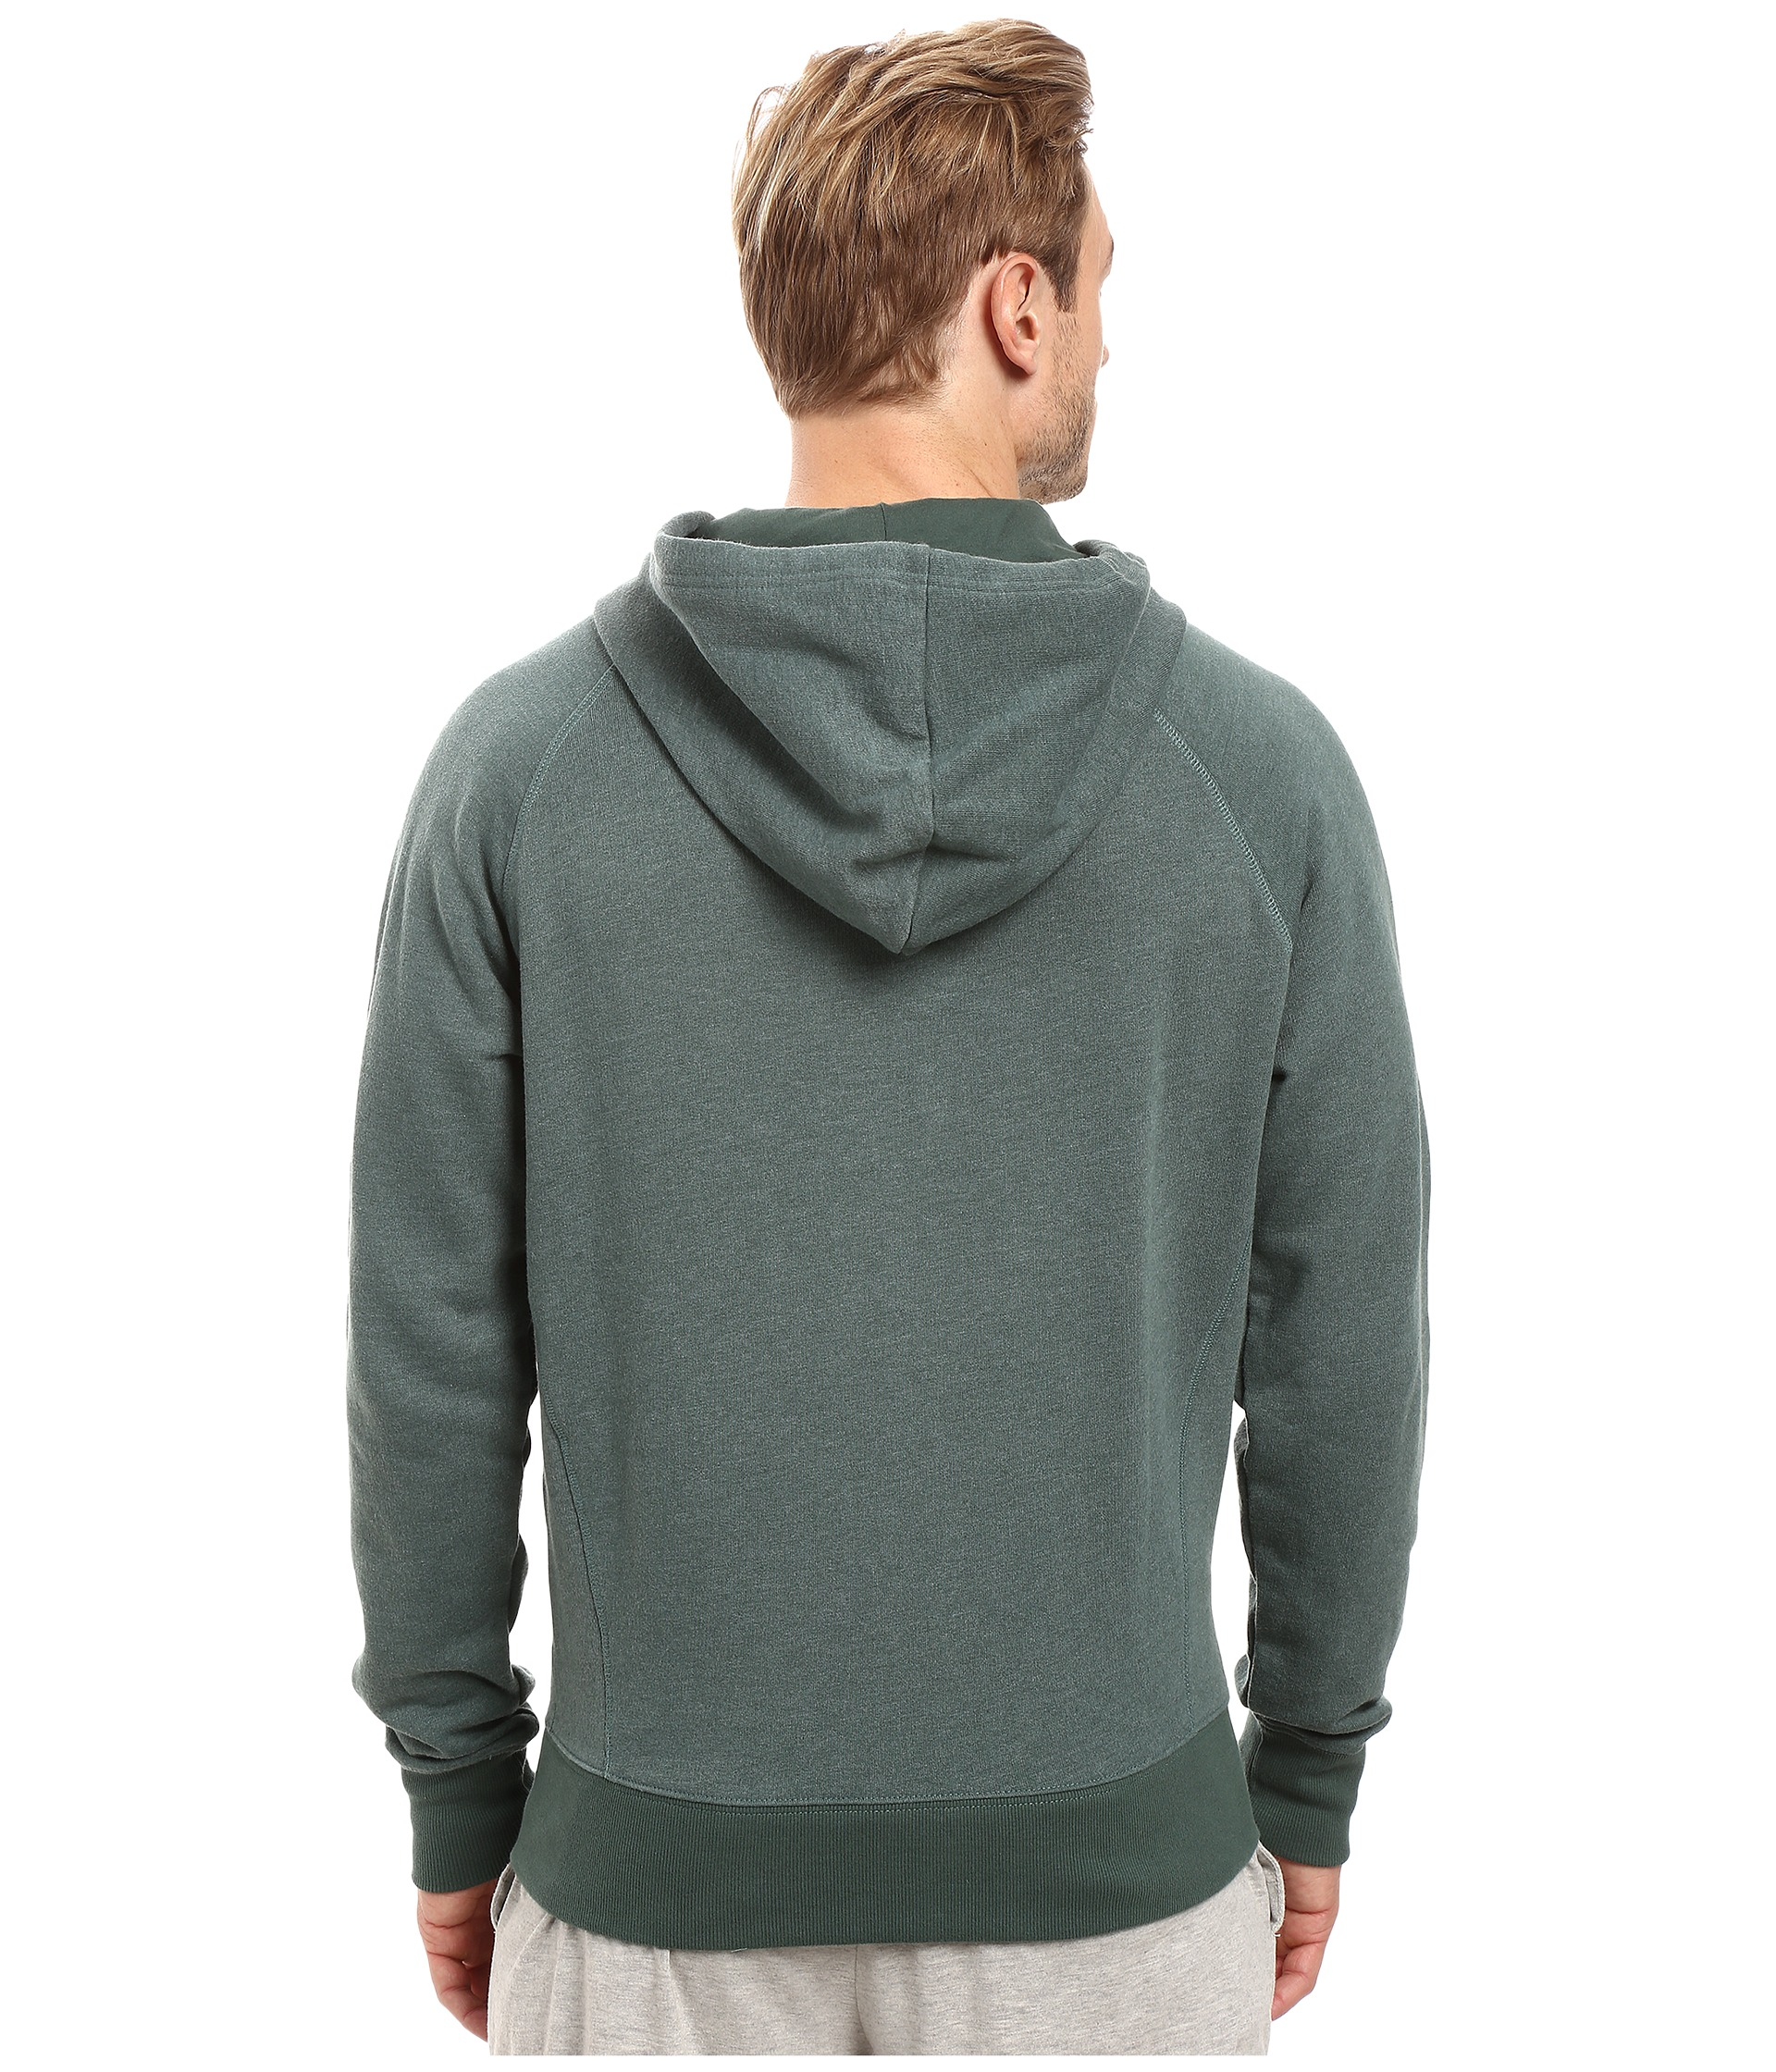 We have a variety of Organic Cotton Sweatshirts & Hoodies and hoodies to fit your fashion needs. Tell the world how you feel or rock a funny saying with your outerwear. Organic Cotton Sweatshirts & Hoodies and hoodies are great gifts for any occasion.